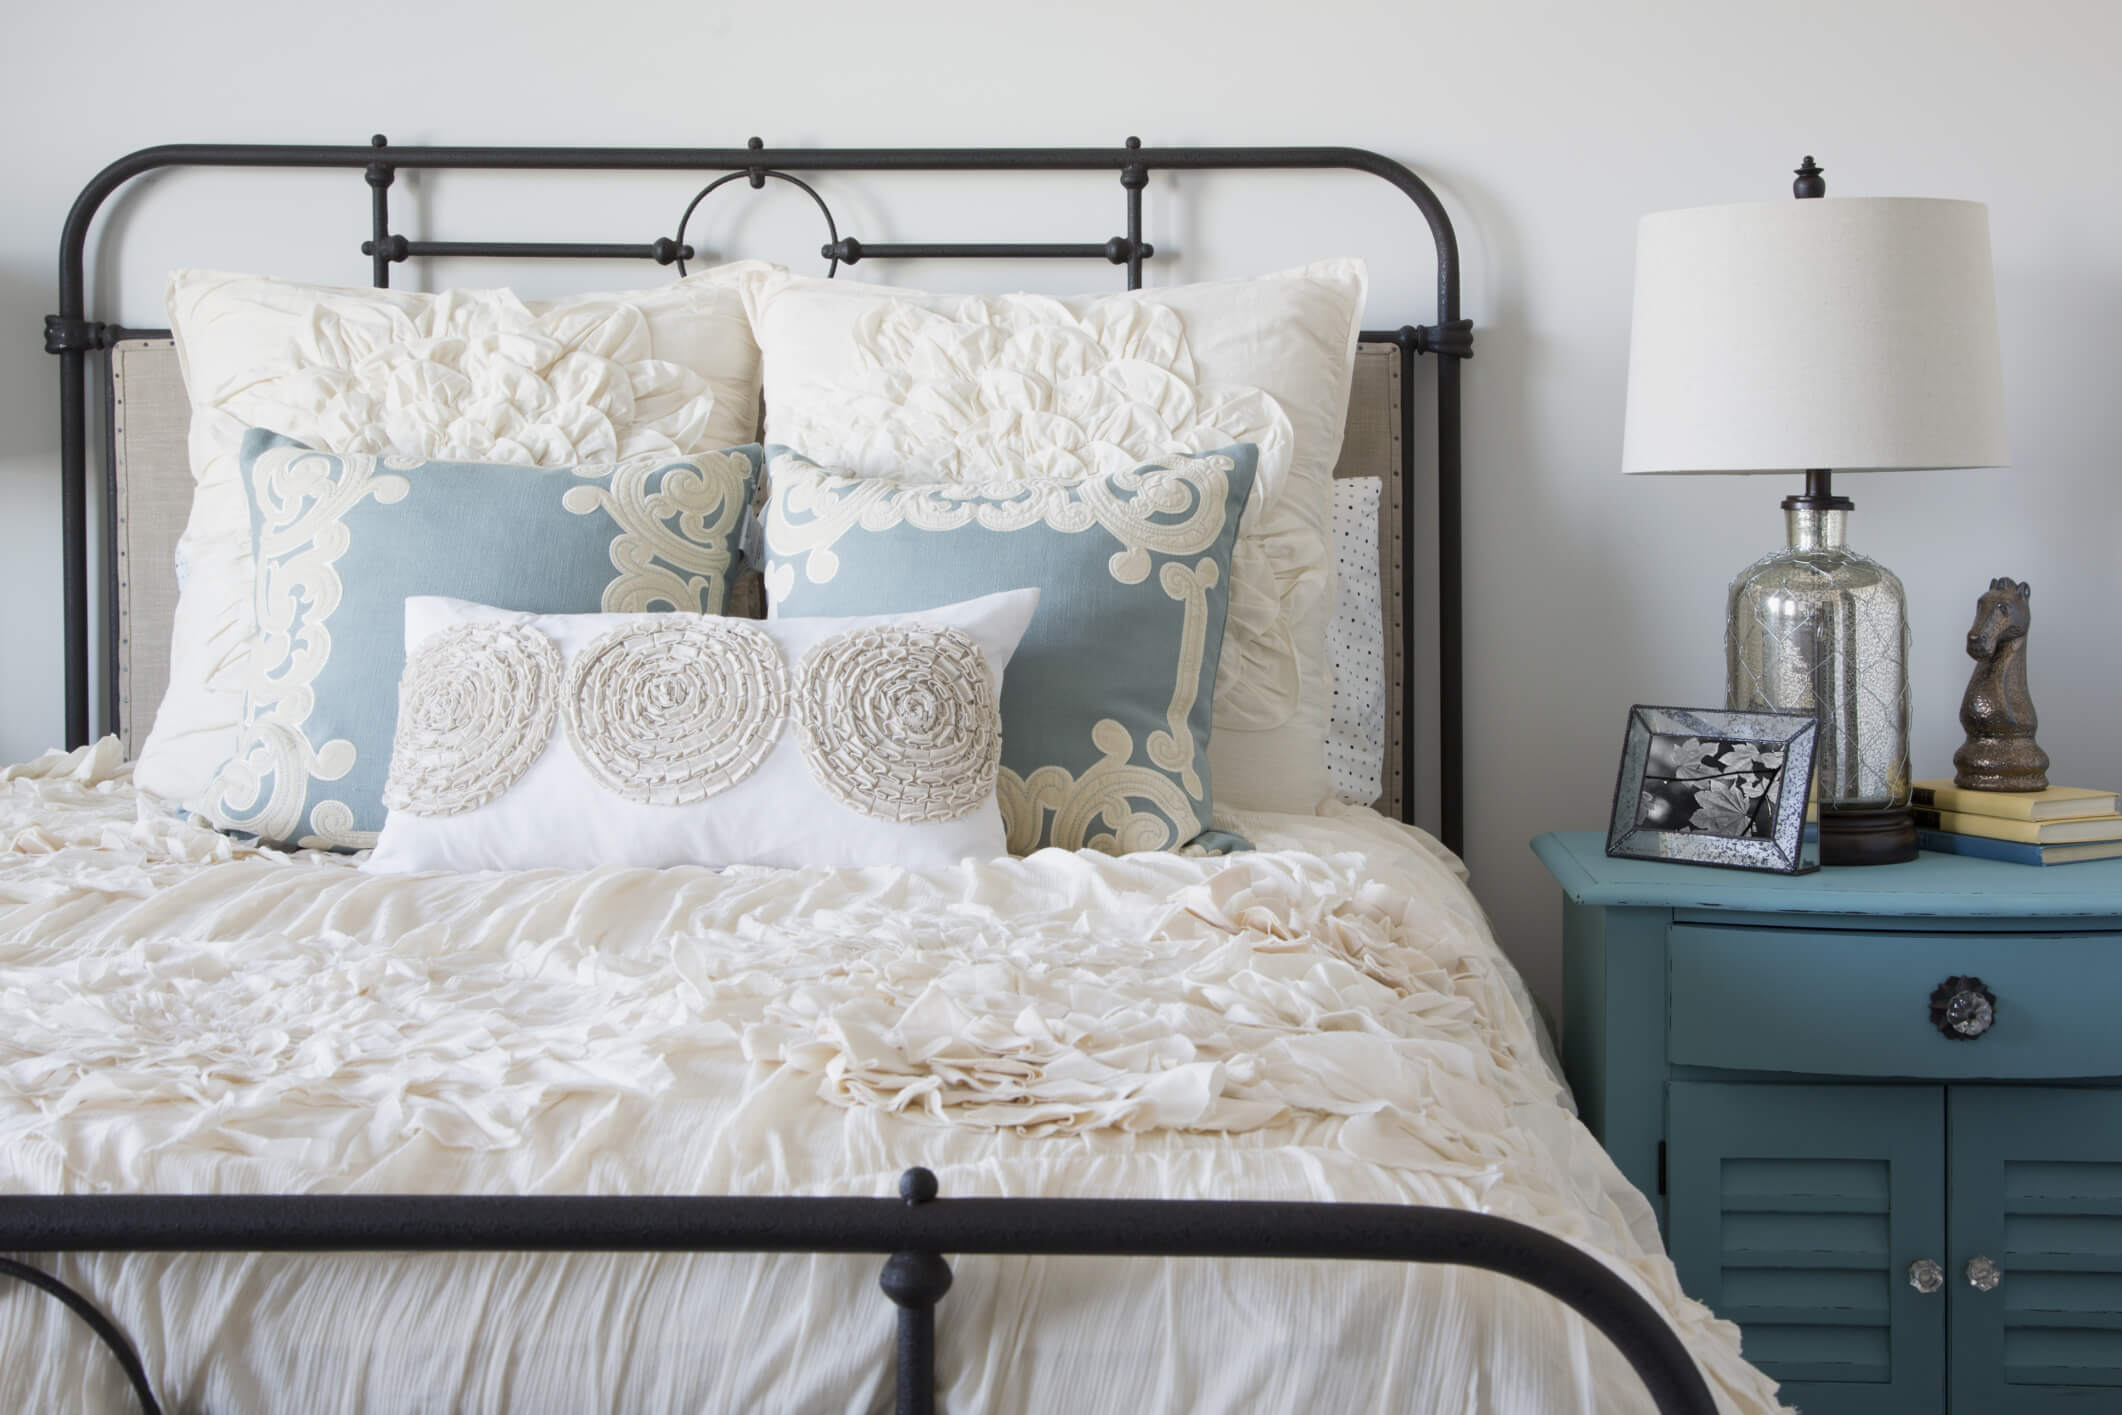 Super cozy color patterns for the guest bedroom